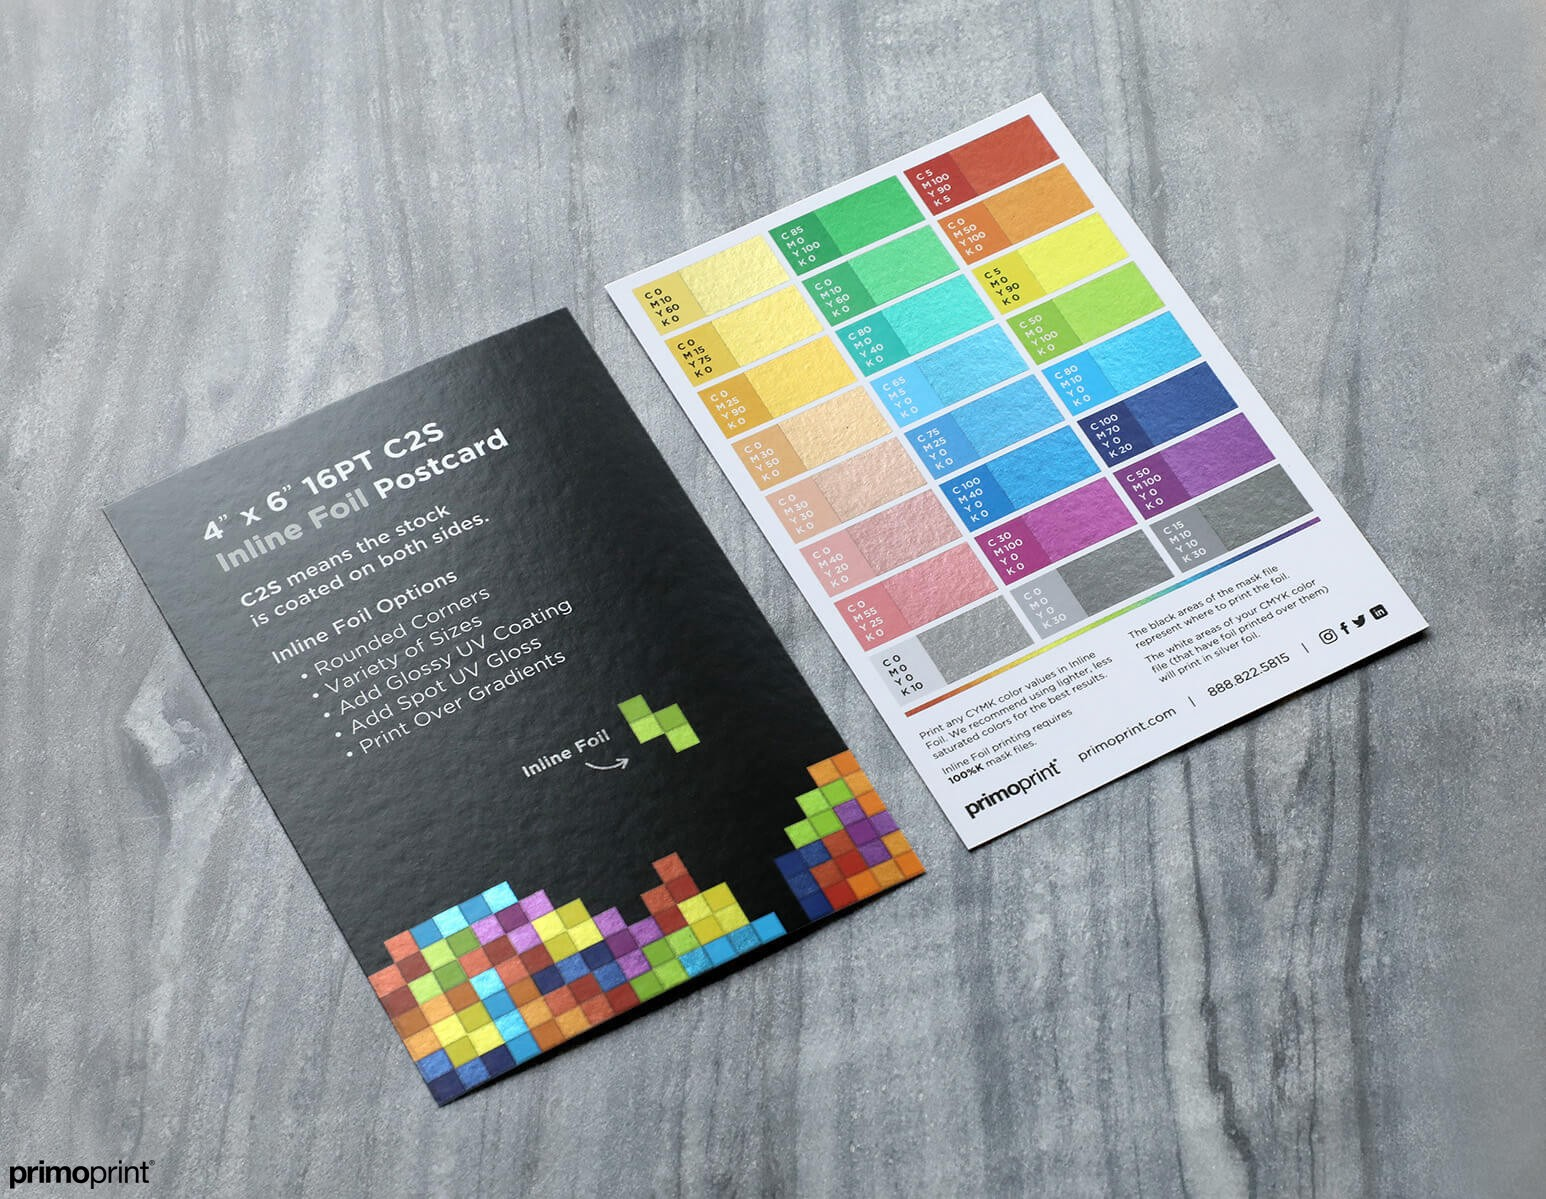 16PT C2S Inline Foil Postcard and Inline Foil Swatch Guide